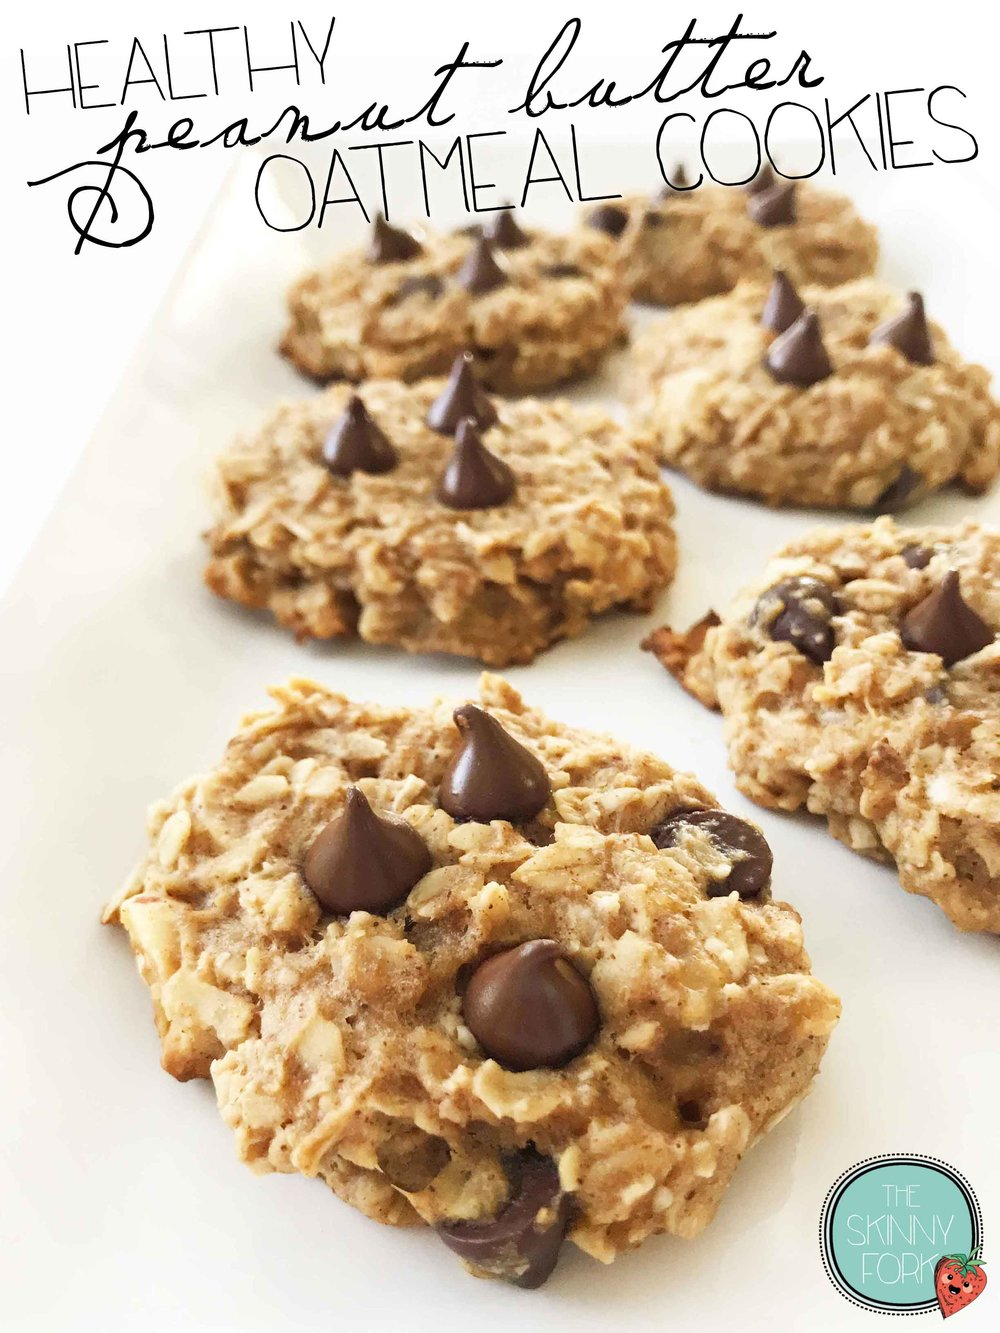 pb-oatmeal-cookie-pin.jpg